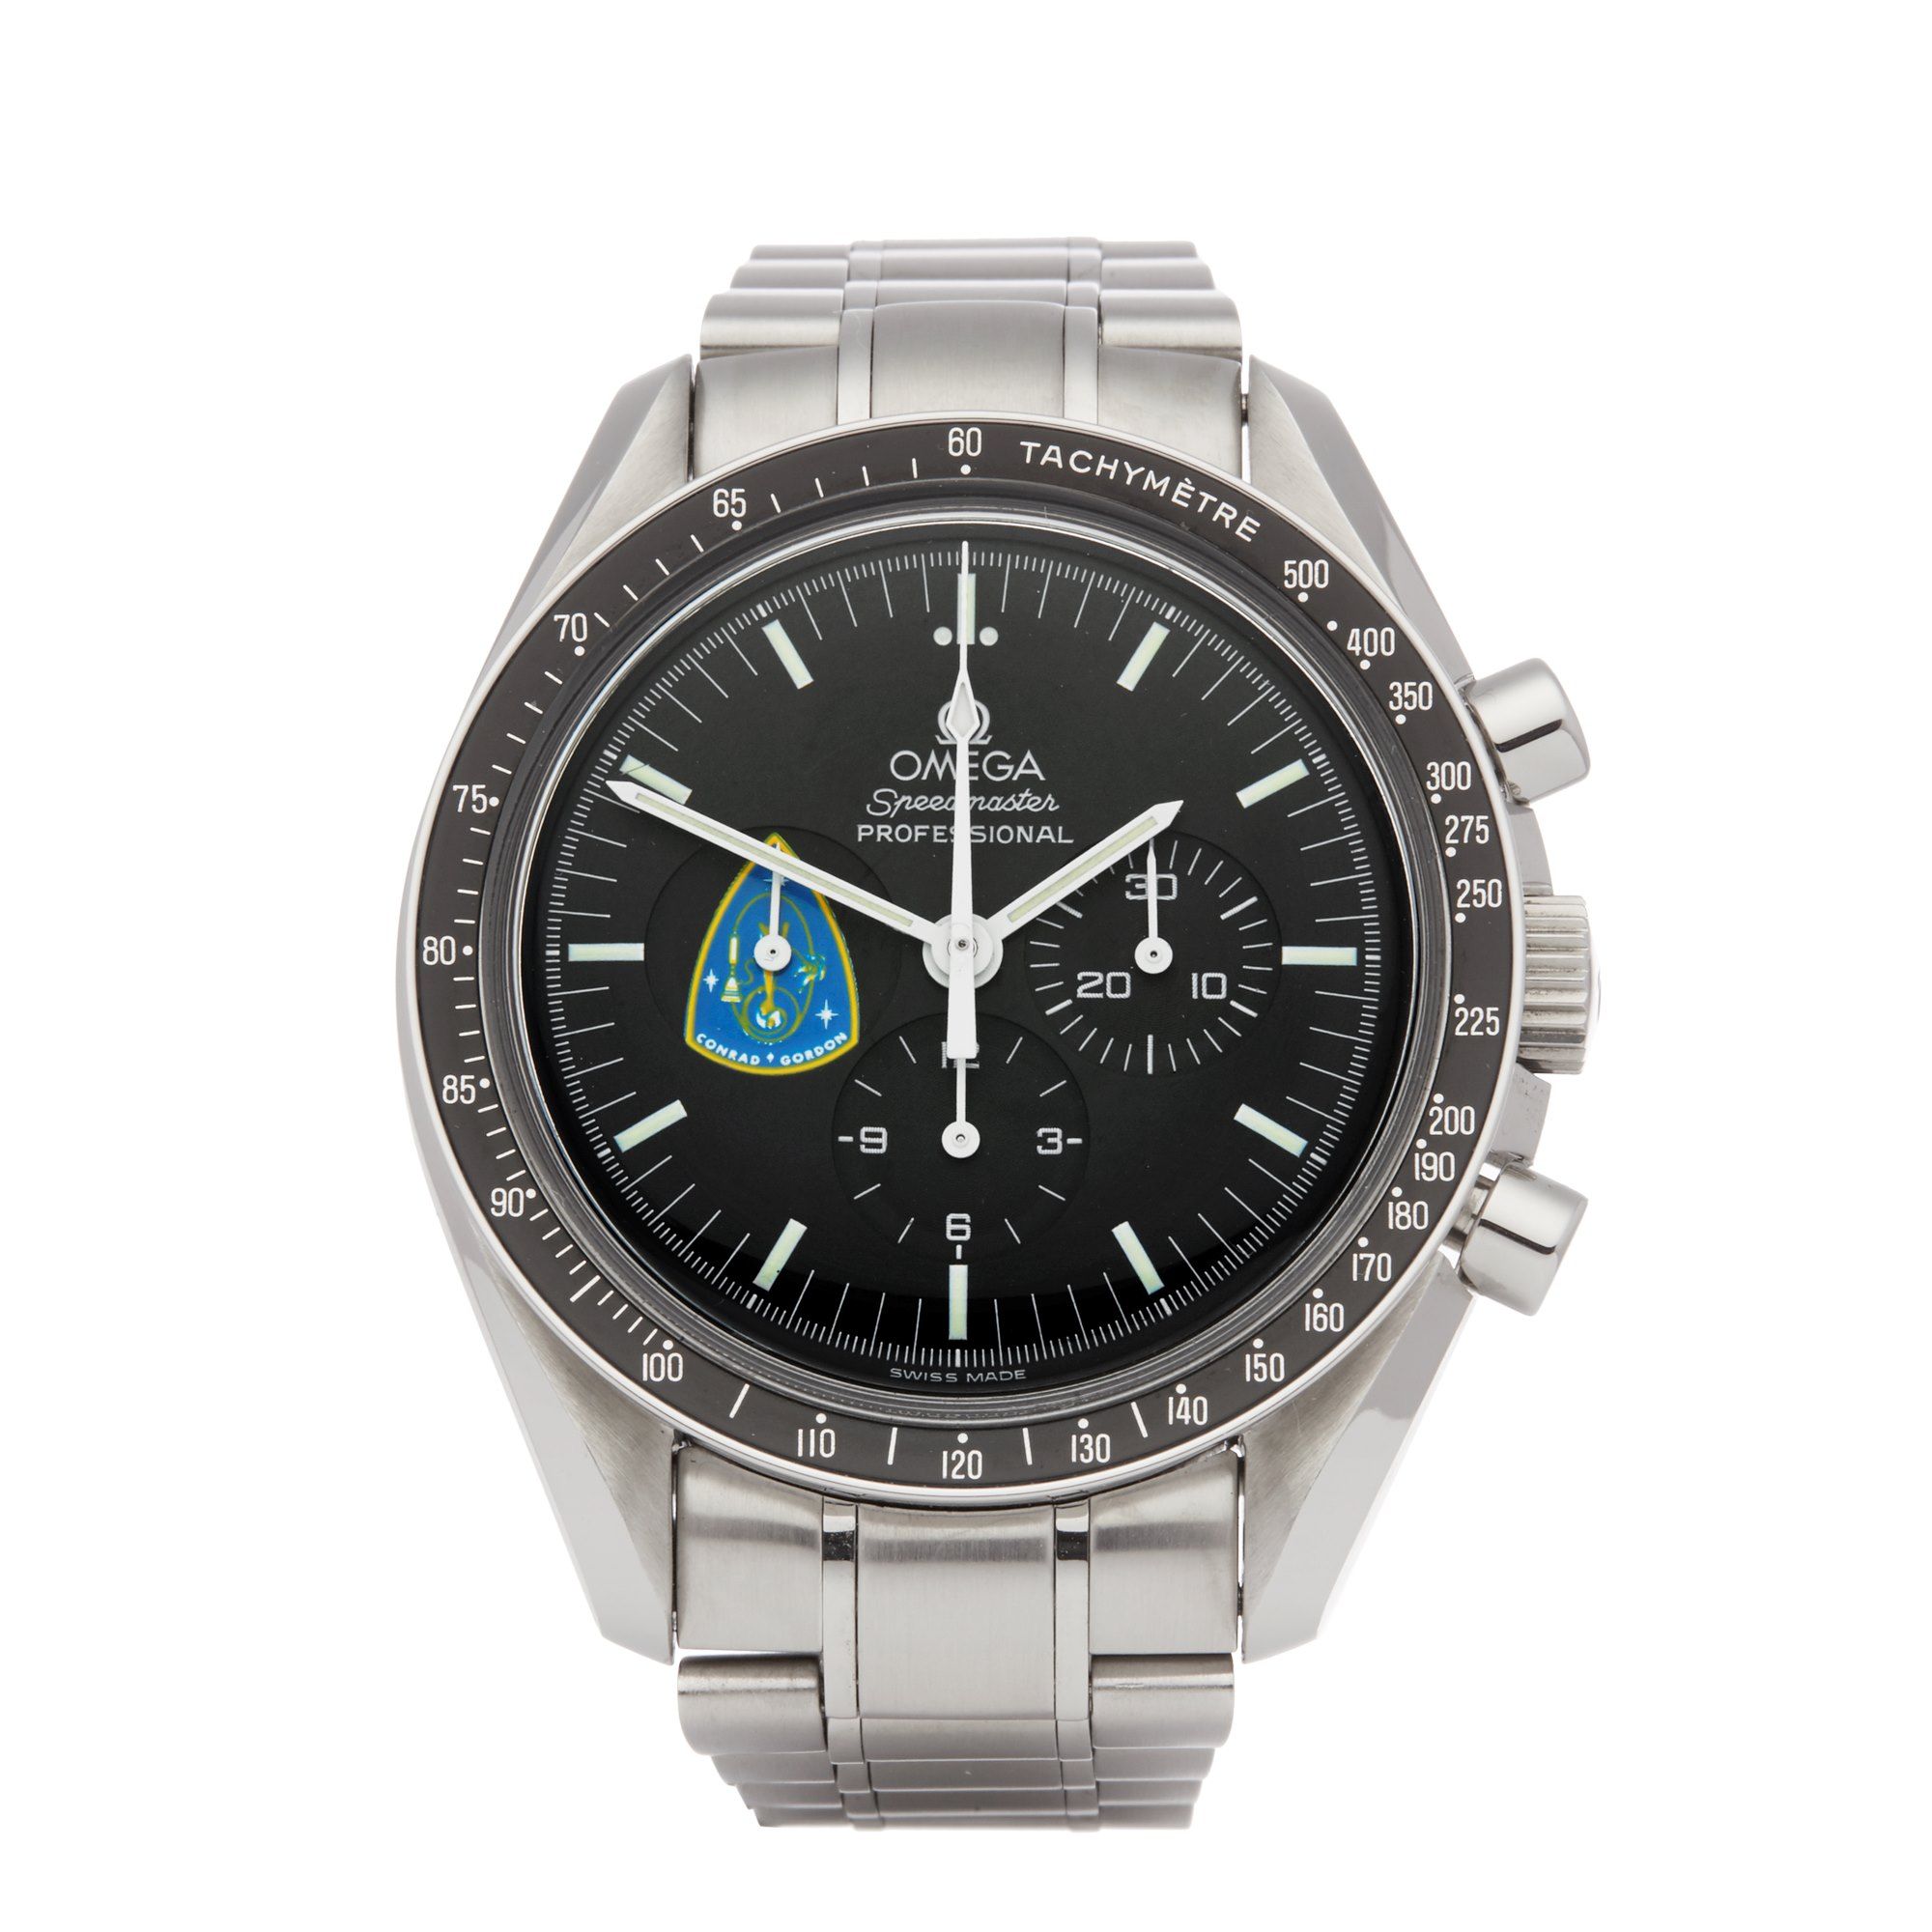 Omega Speedmaster Missions Conrad Gordon Chronograph Roestvrij Staal 145.0022 3450022